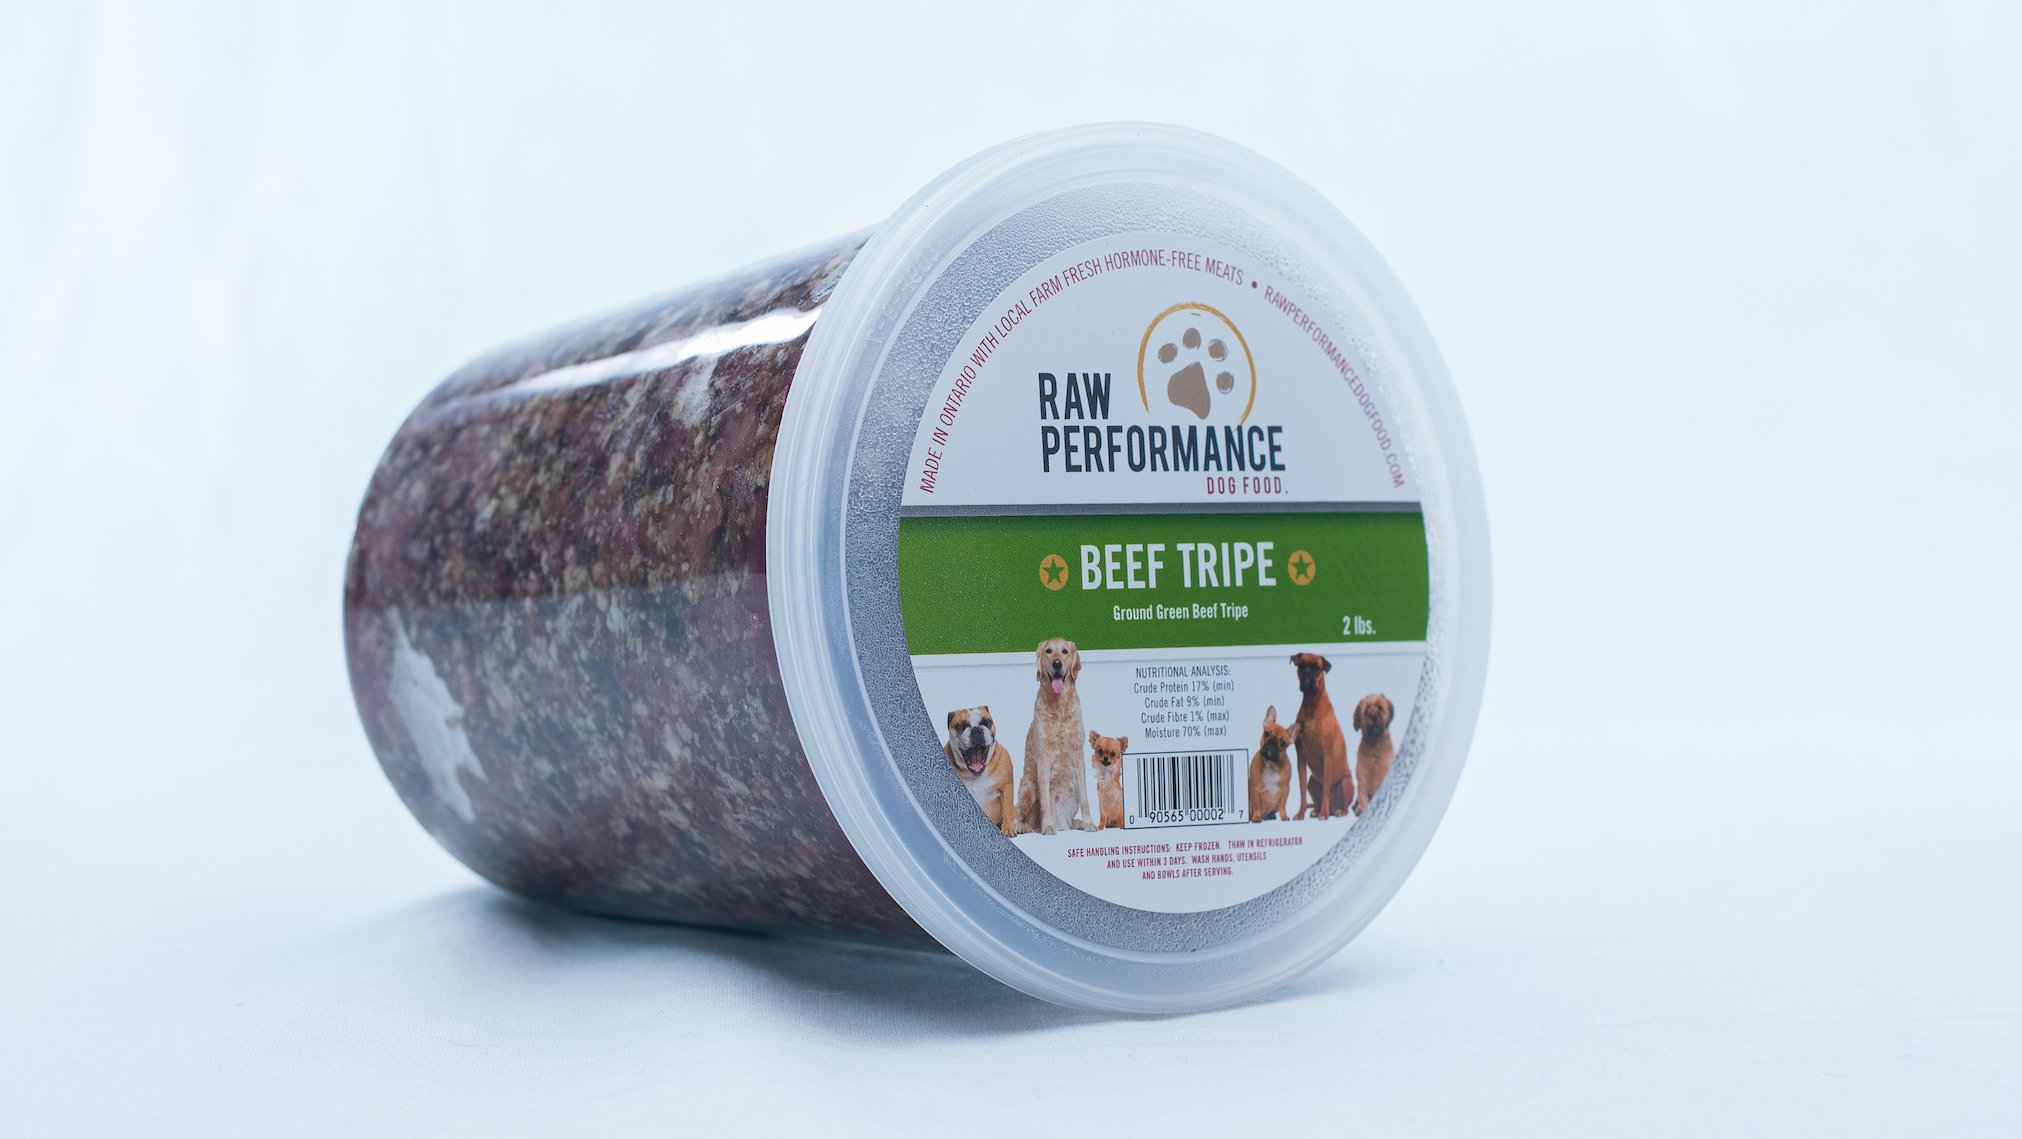 Raw Performance Specialty Blends Beef Tripe Dog Food, 2-lb